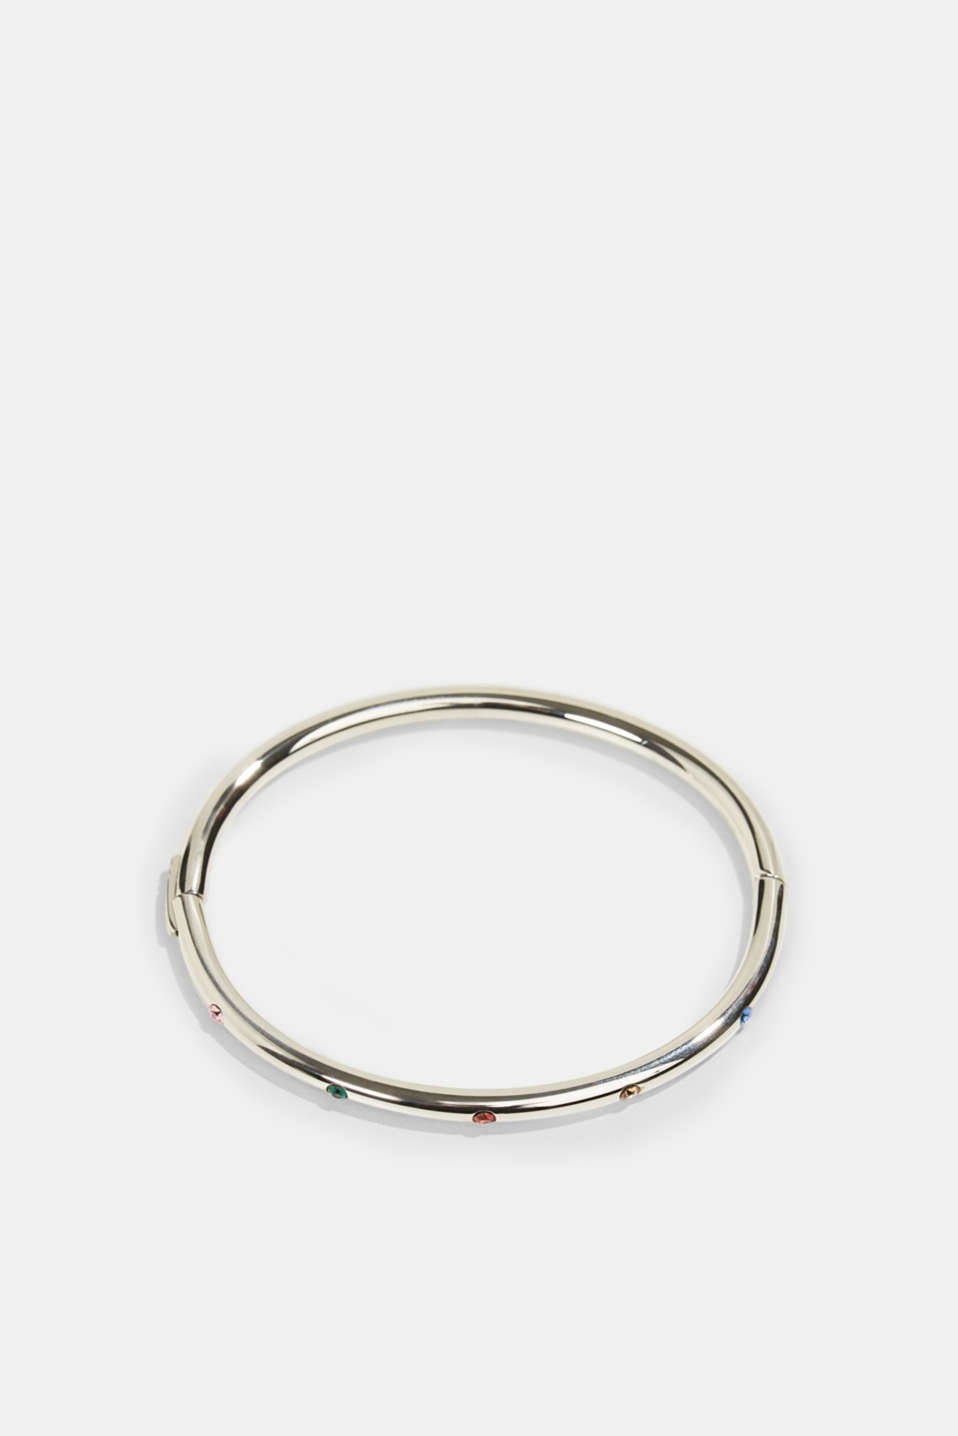 Esprit - Stainless-steel bangle trimmed with colourful zirconia